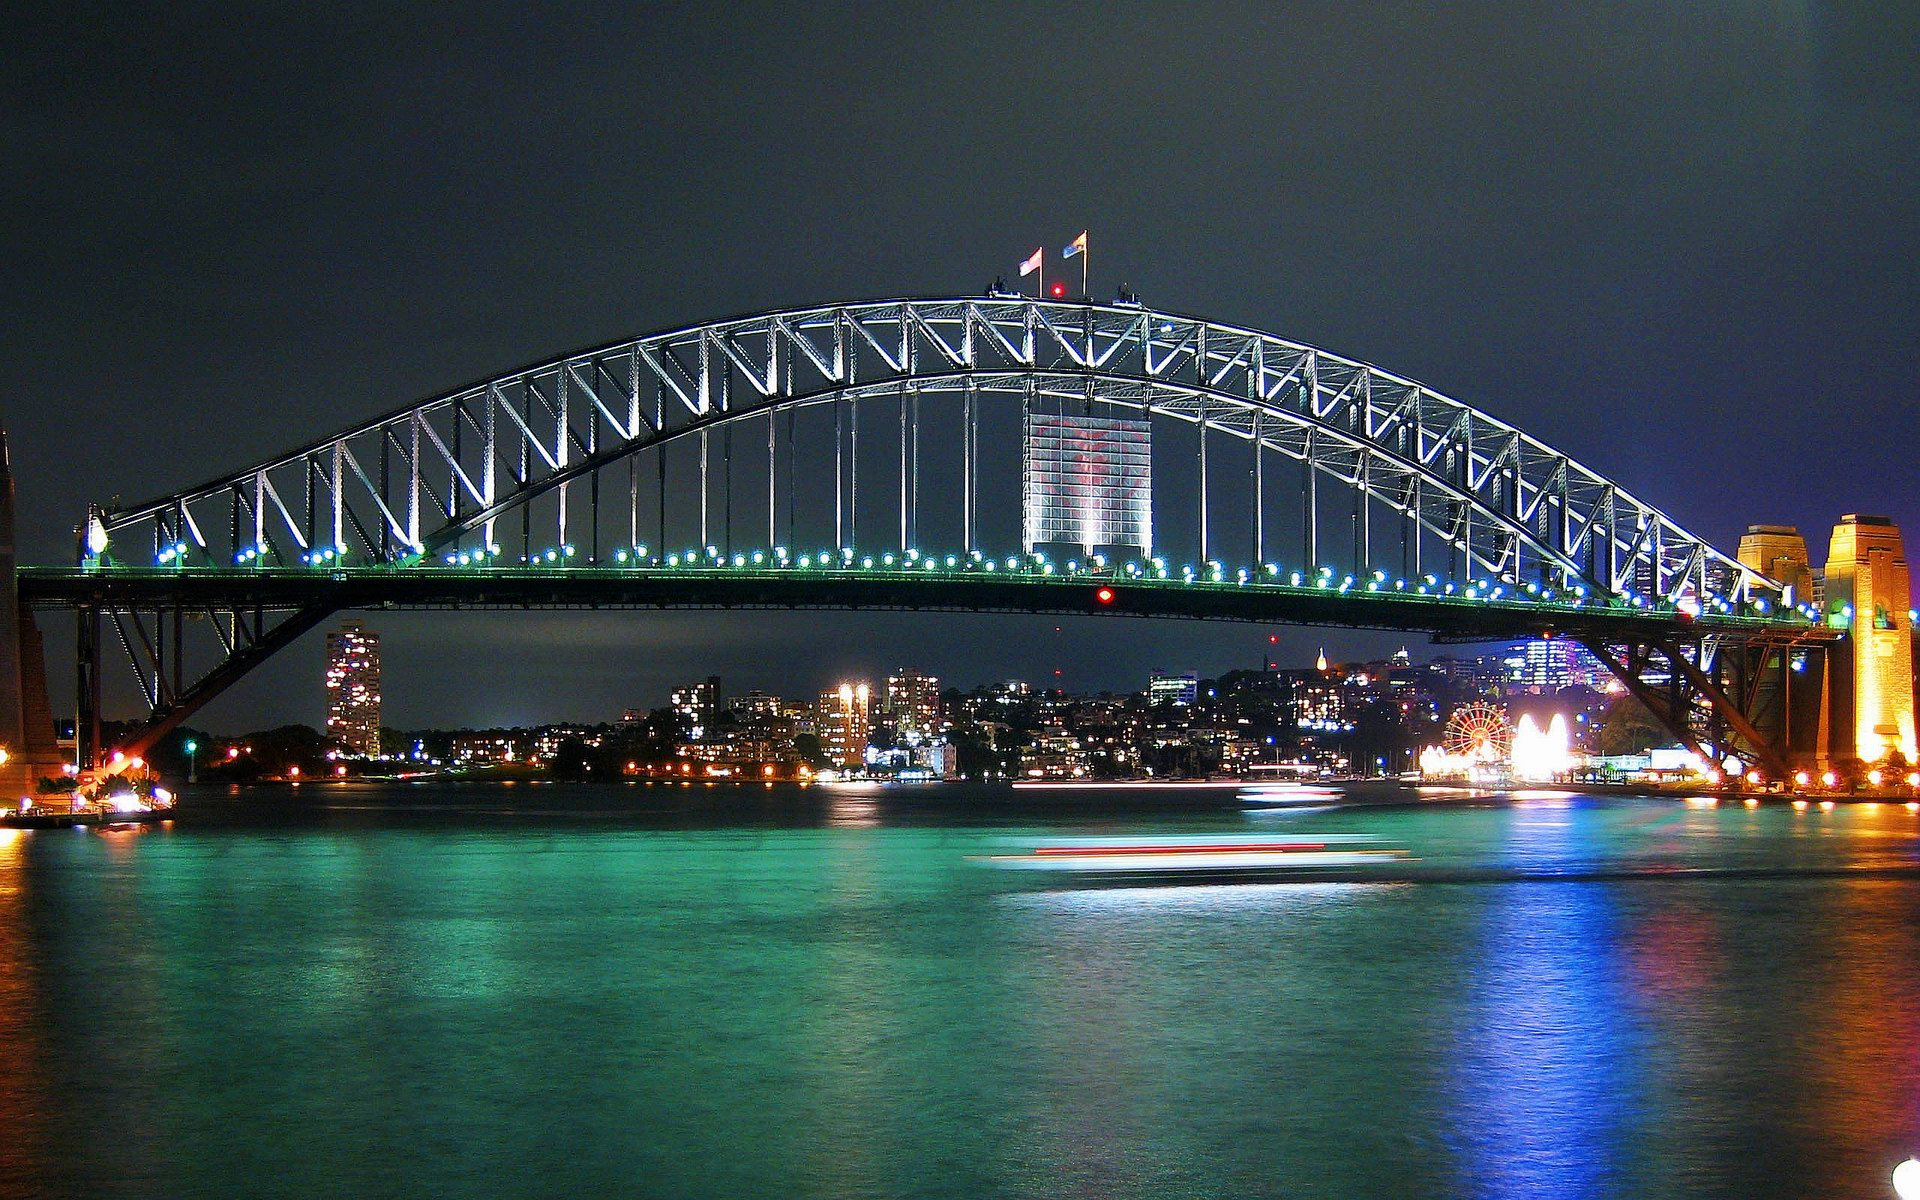 sydney-harbour-bridge-sudney-australia